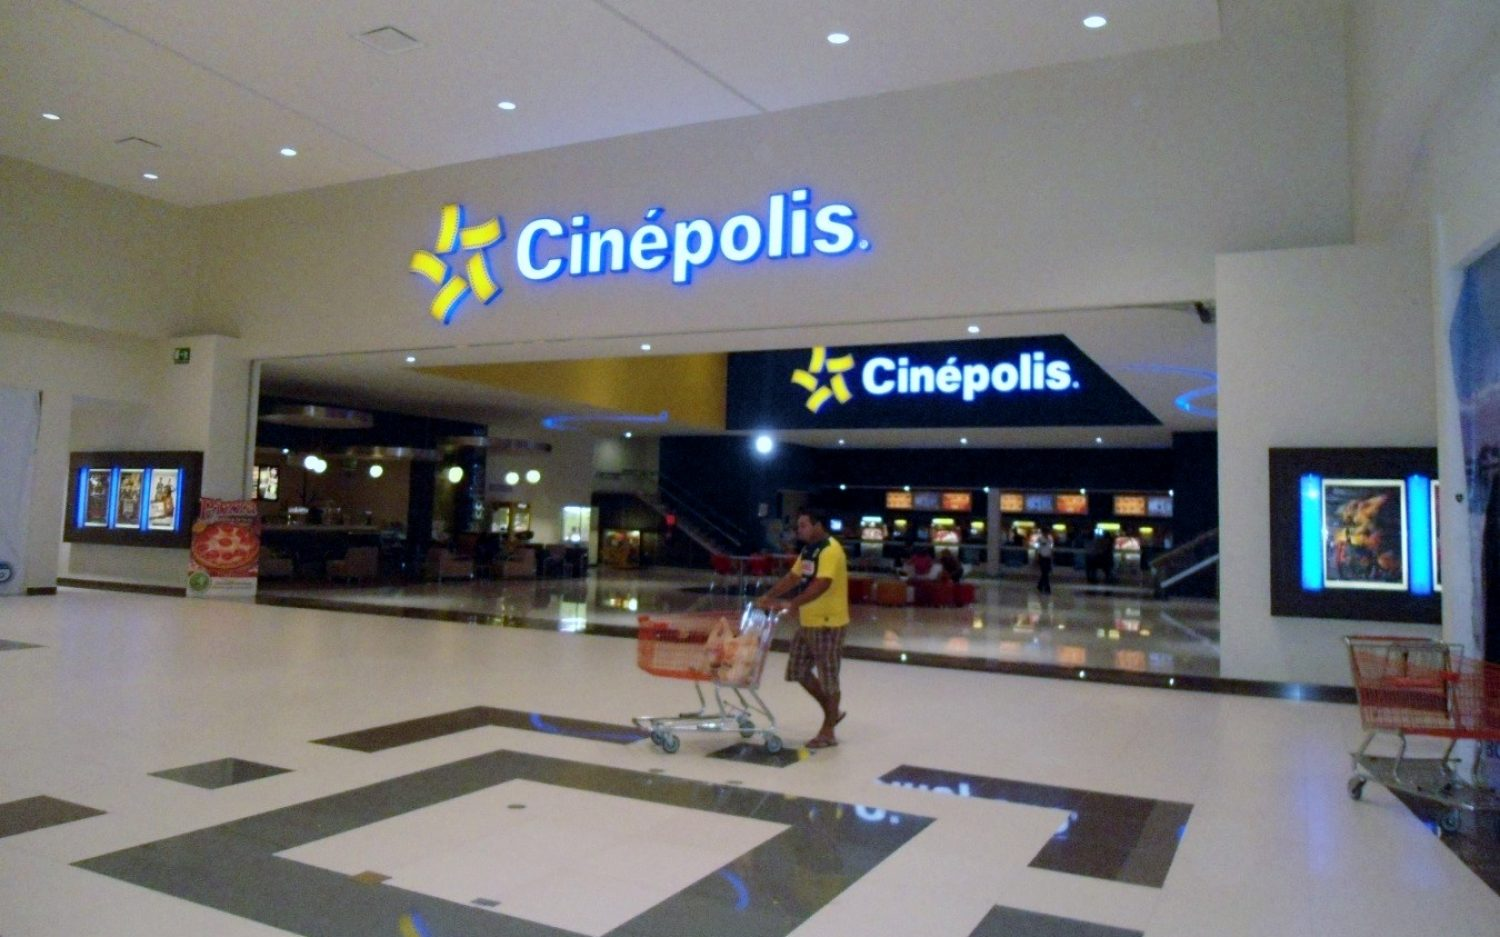 Co-Plaza Sendero Villahermosa (23)